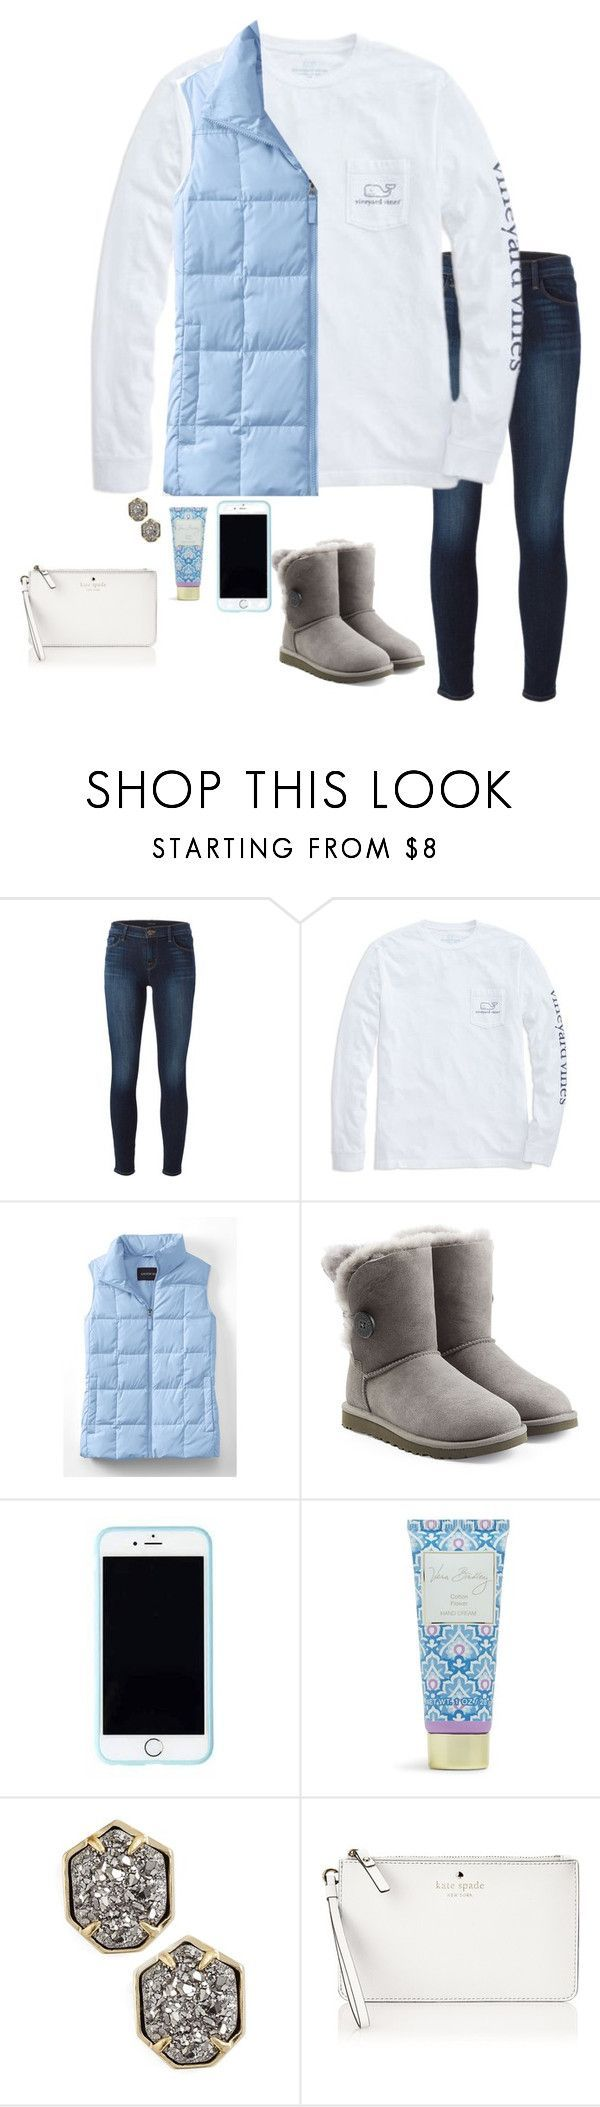 Untitled #153 by annakhowton ❤ liked on Polyvore featuring J Brand, Vineyard Vines, Lands' End, UGG Australia, Lilly Pulitzer, Vera Bradley, Kendra Scott and Kate Spade